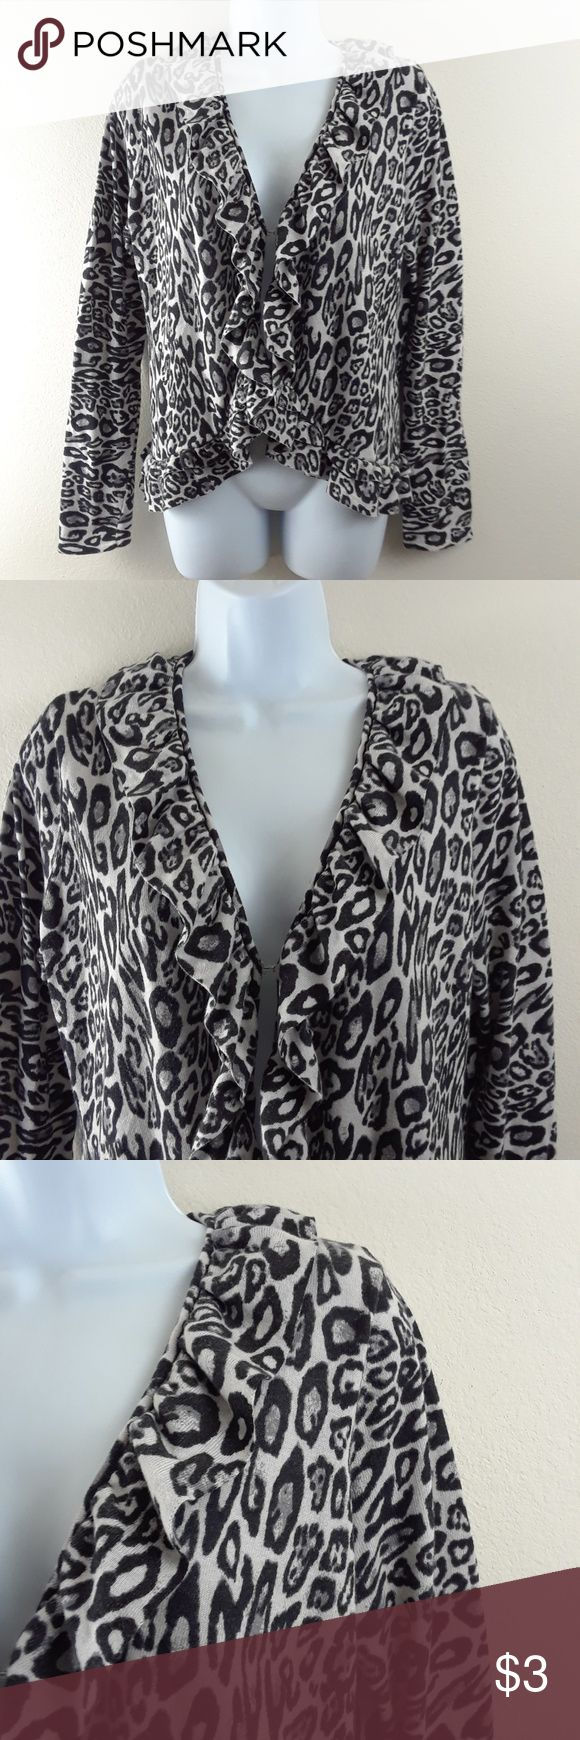 Best 25  Animal print cardigans ideas on Pinterest | Animal print ...